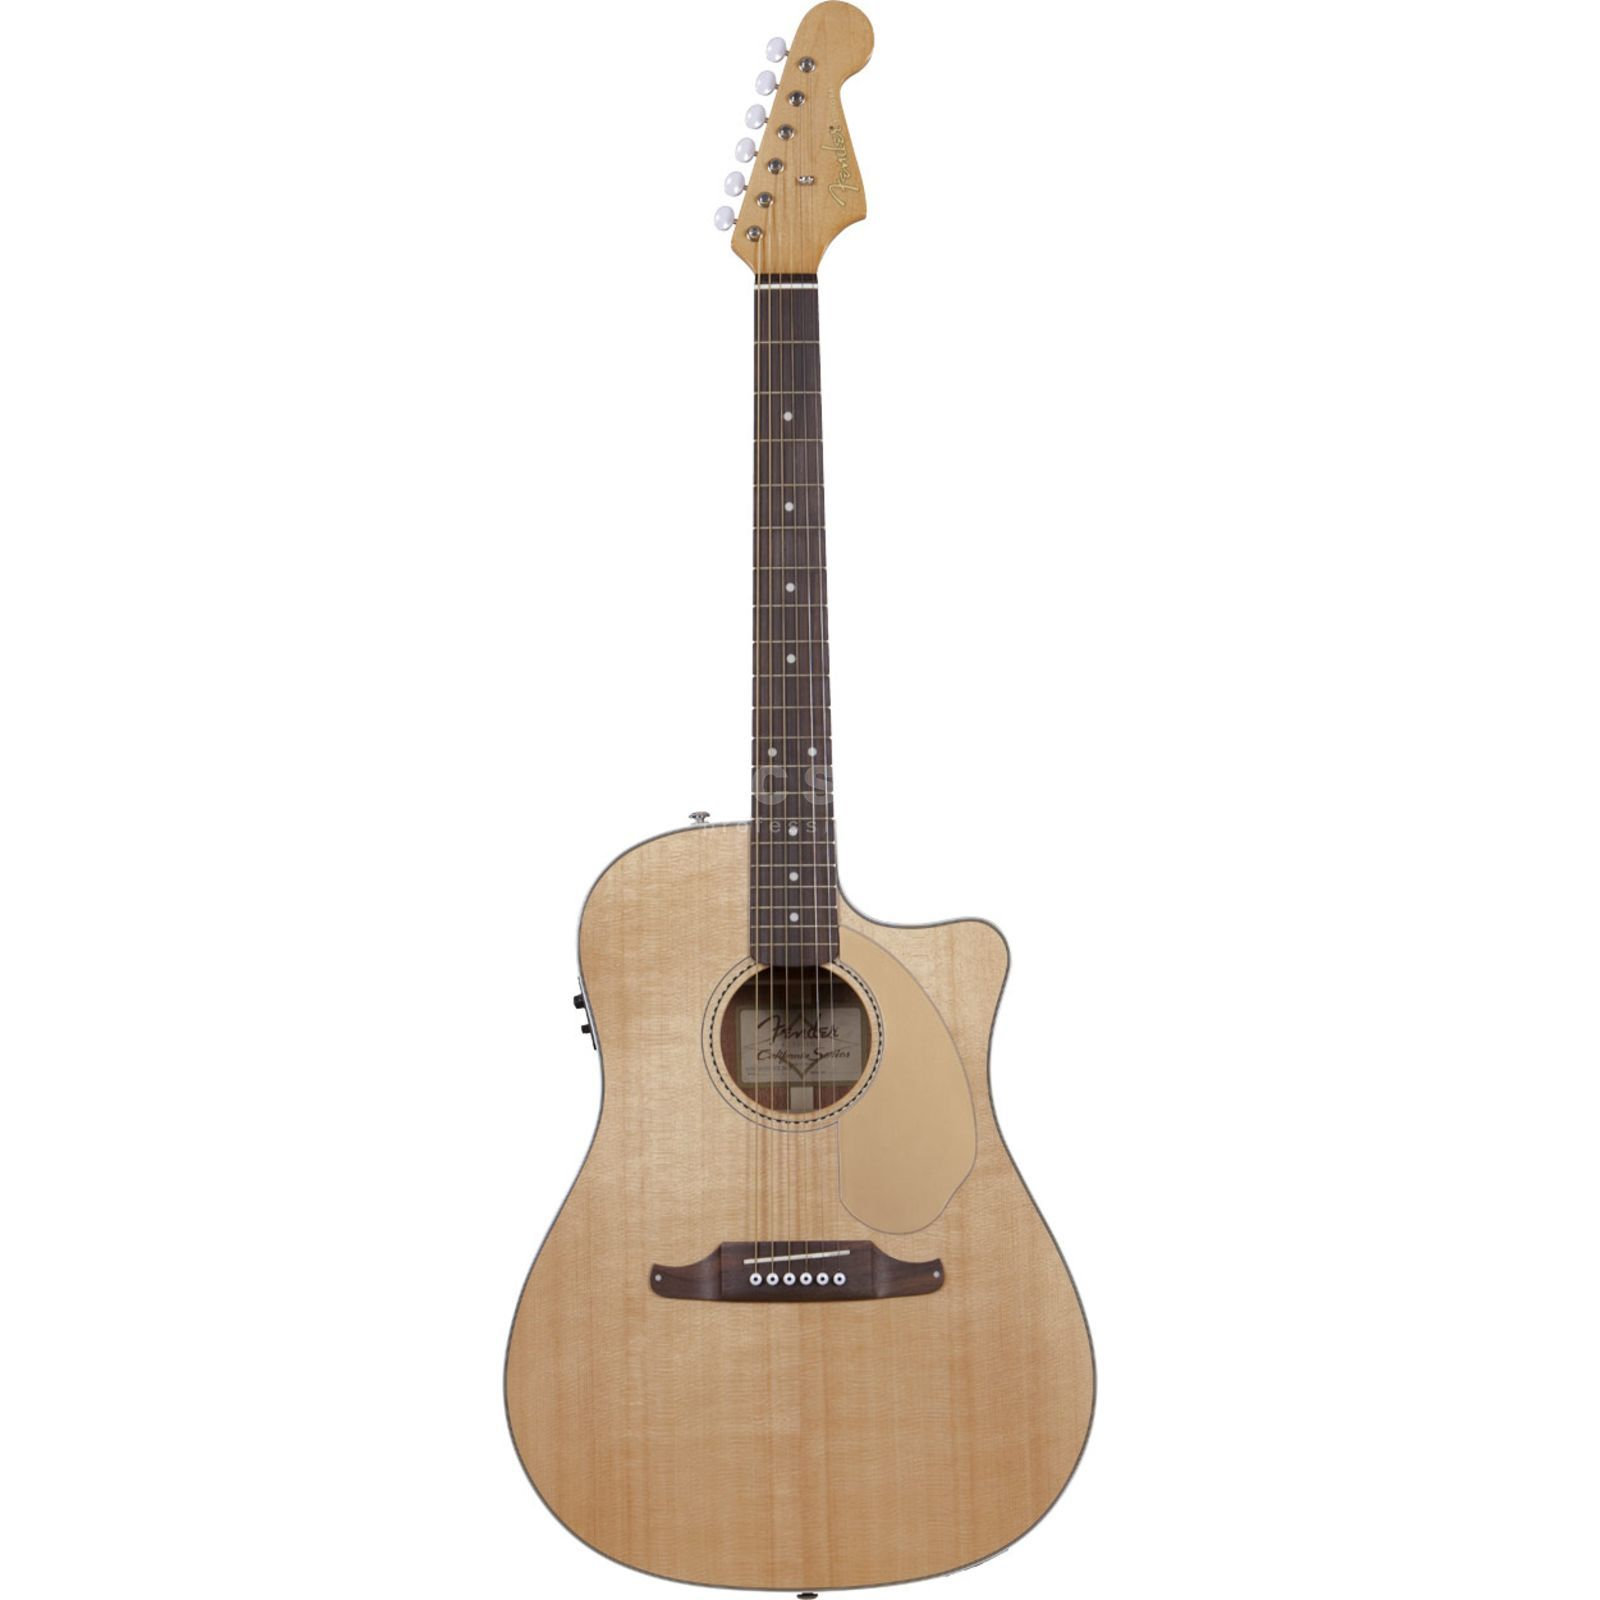 Fender Sonoran SCE Natural Solid top, Fishman Isys III Produktbillede